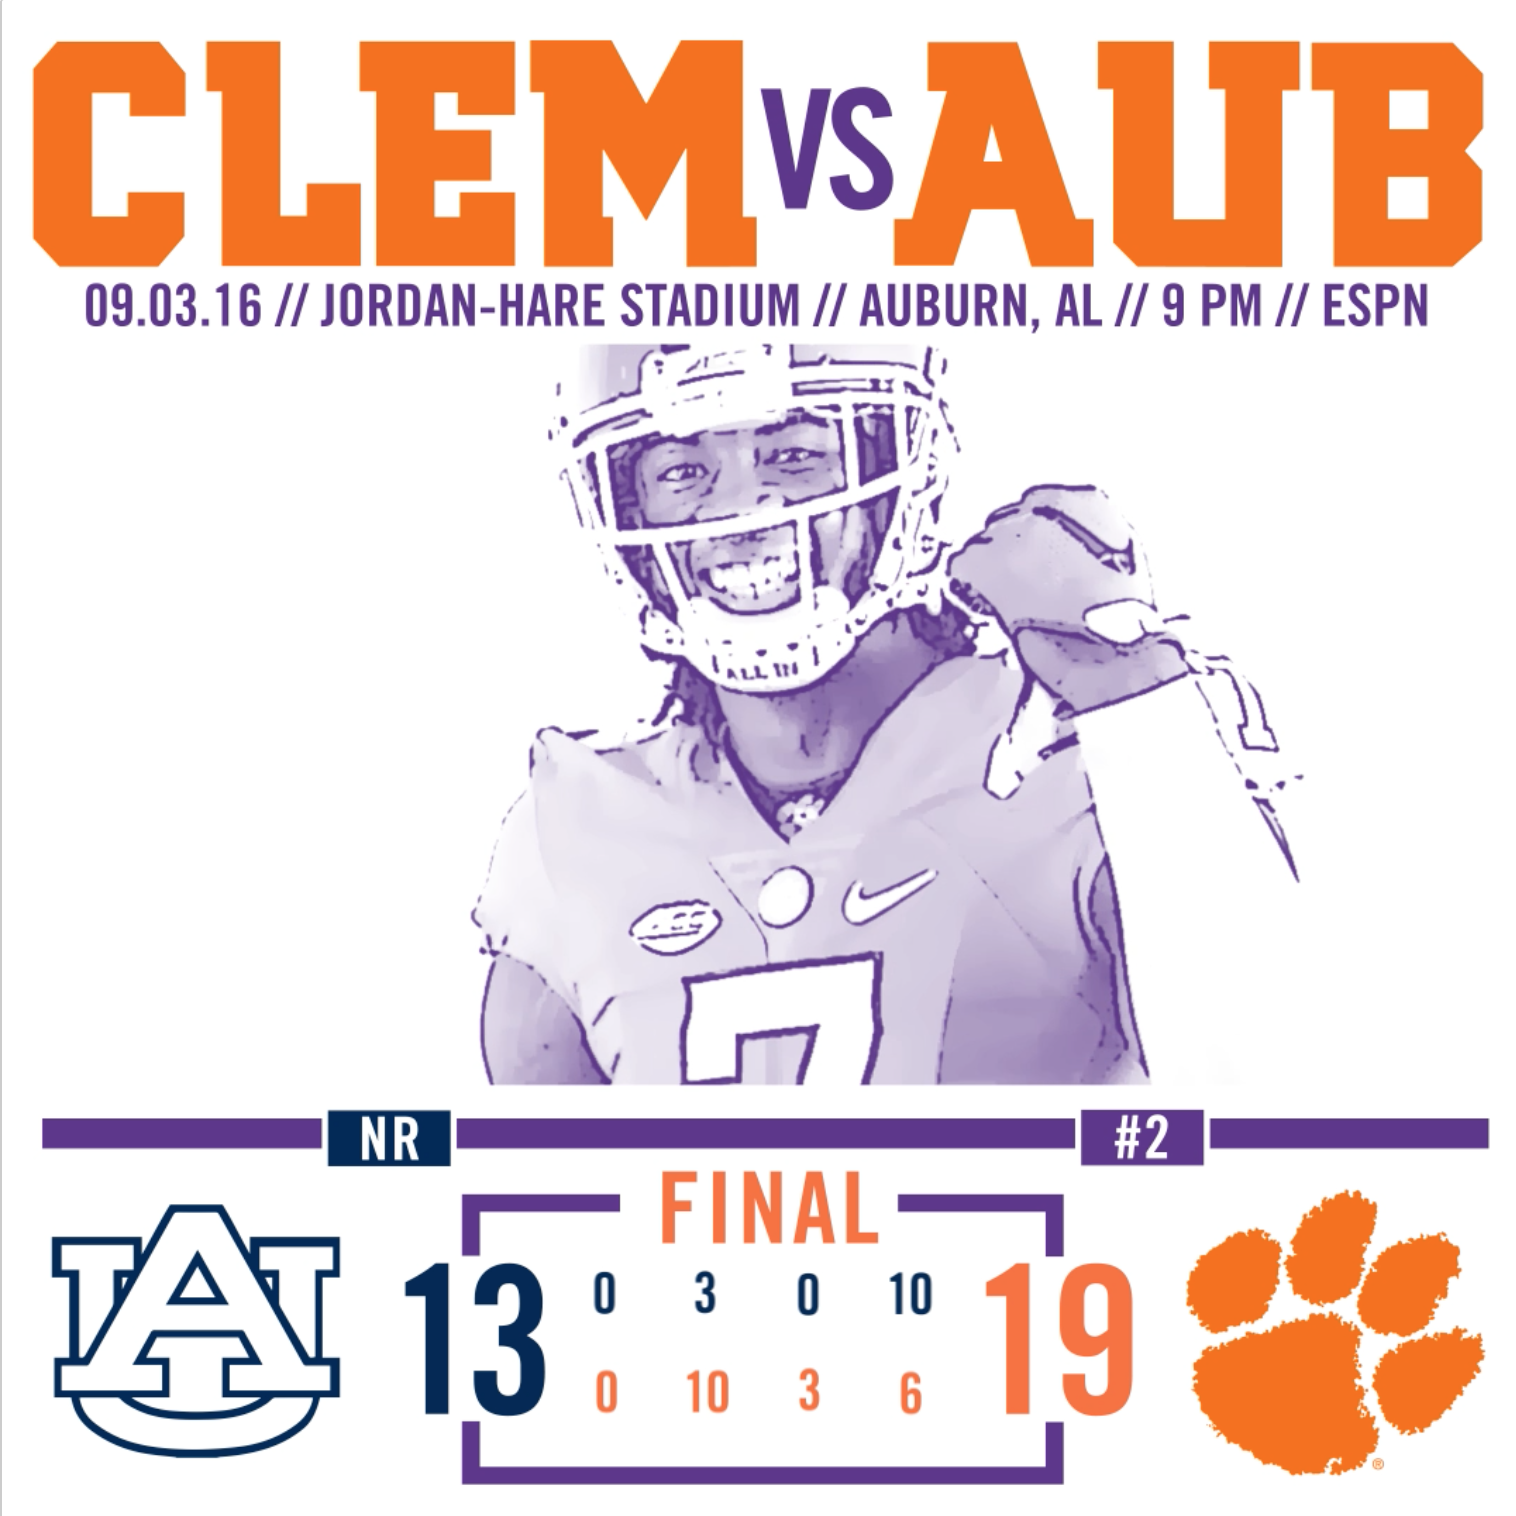 Tigers Hang on in Auburn, 19-13